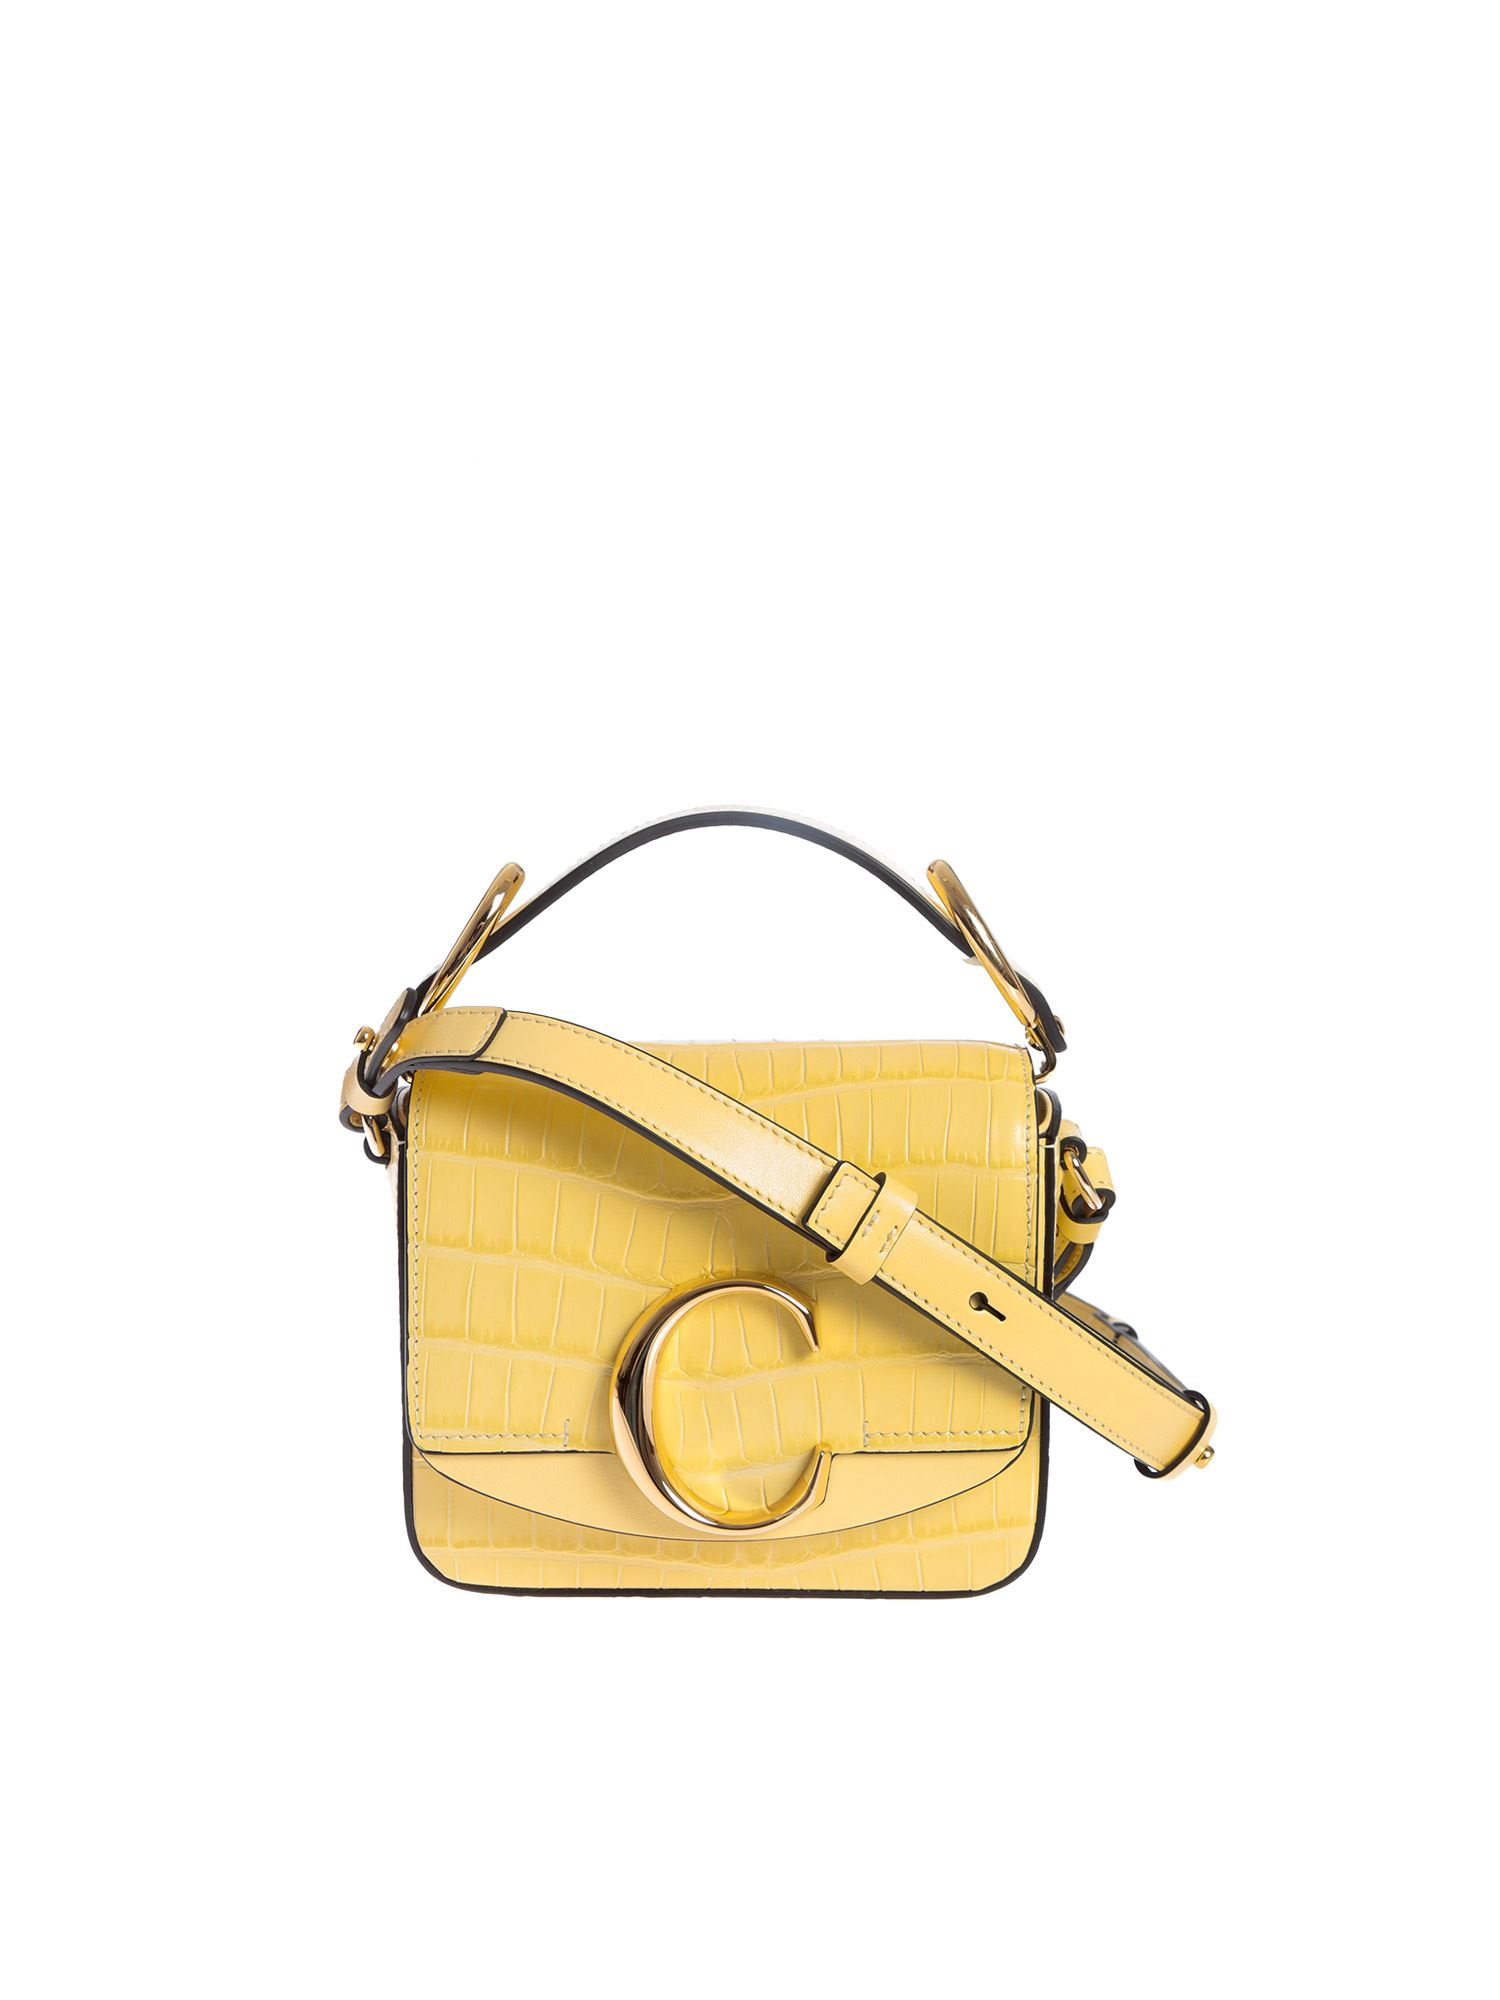 Chloé MINI SQUARE BAG IN SOFTY YELLOW